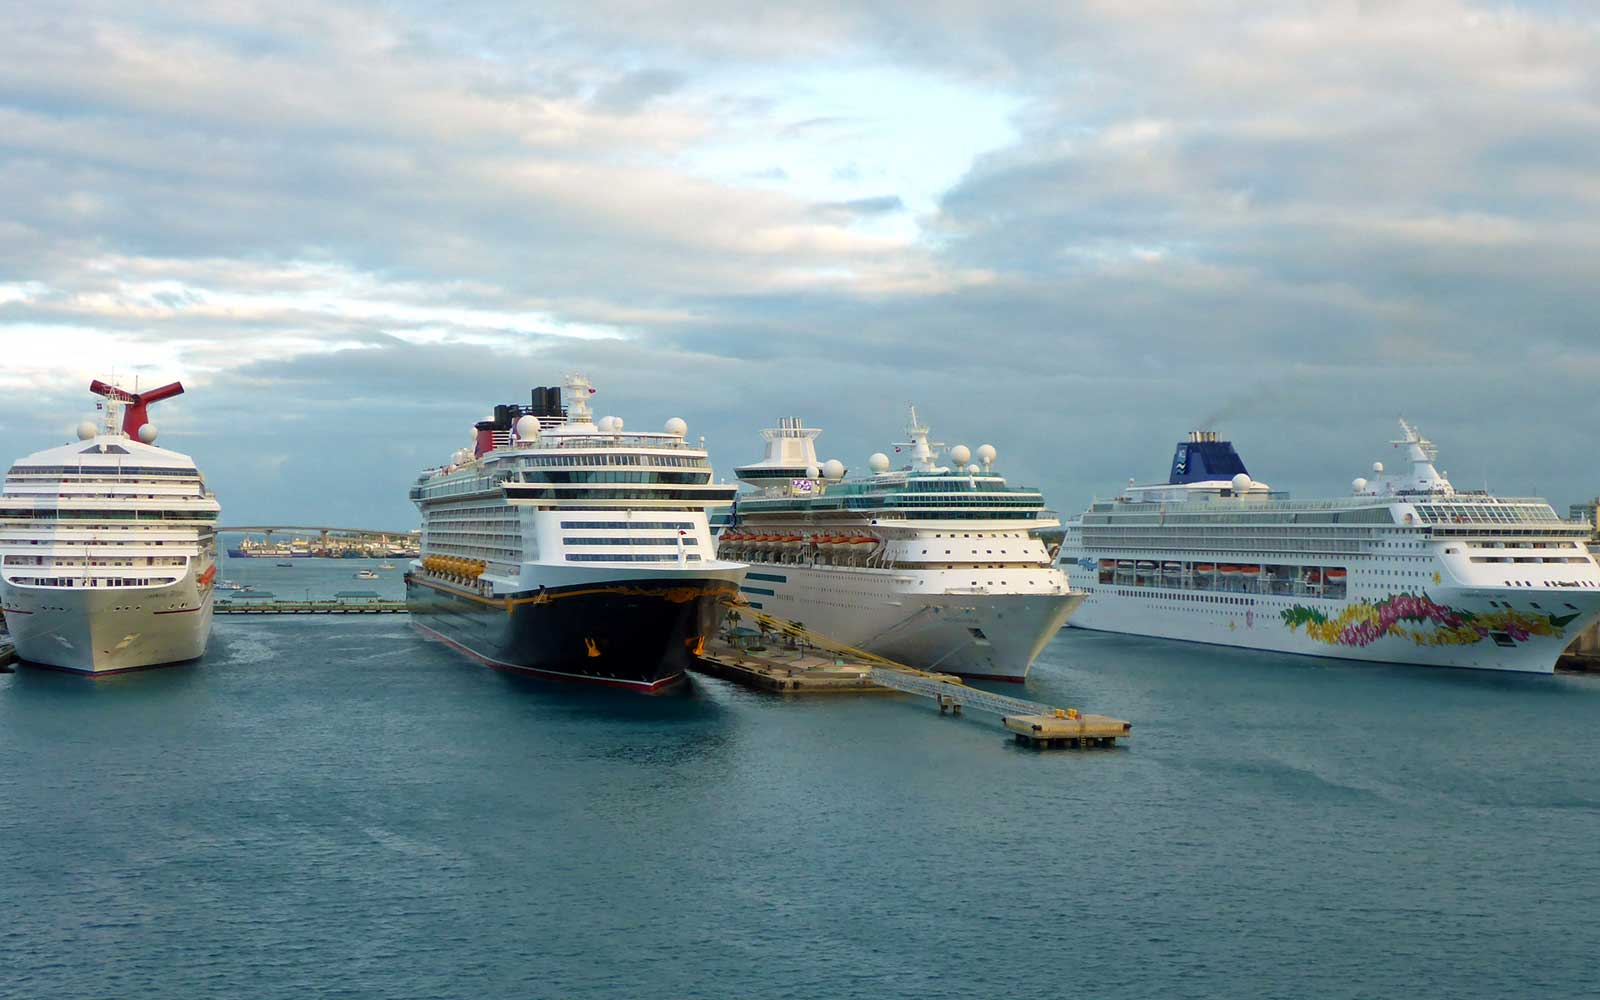 Cruise ships at port - when to book